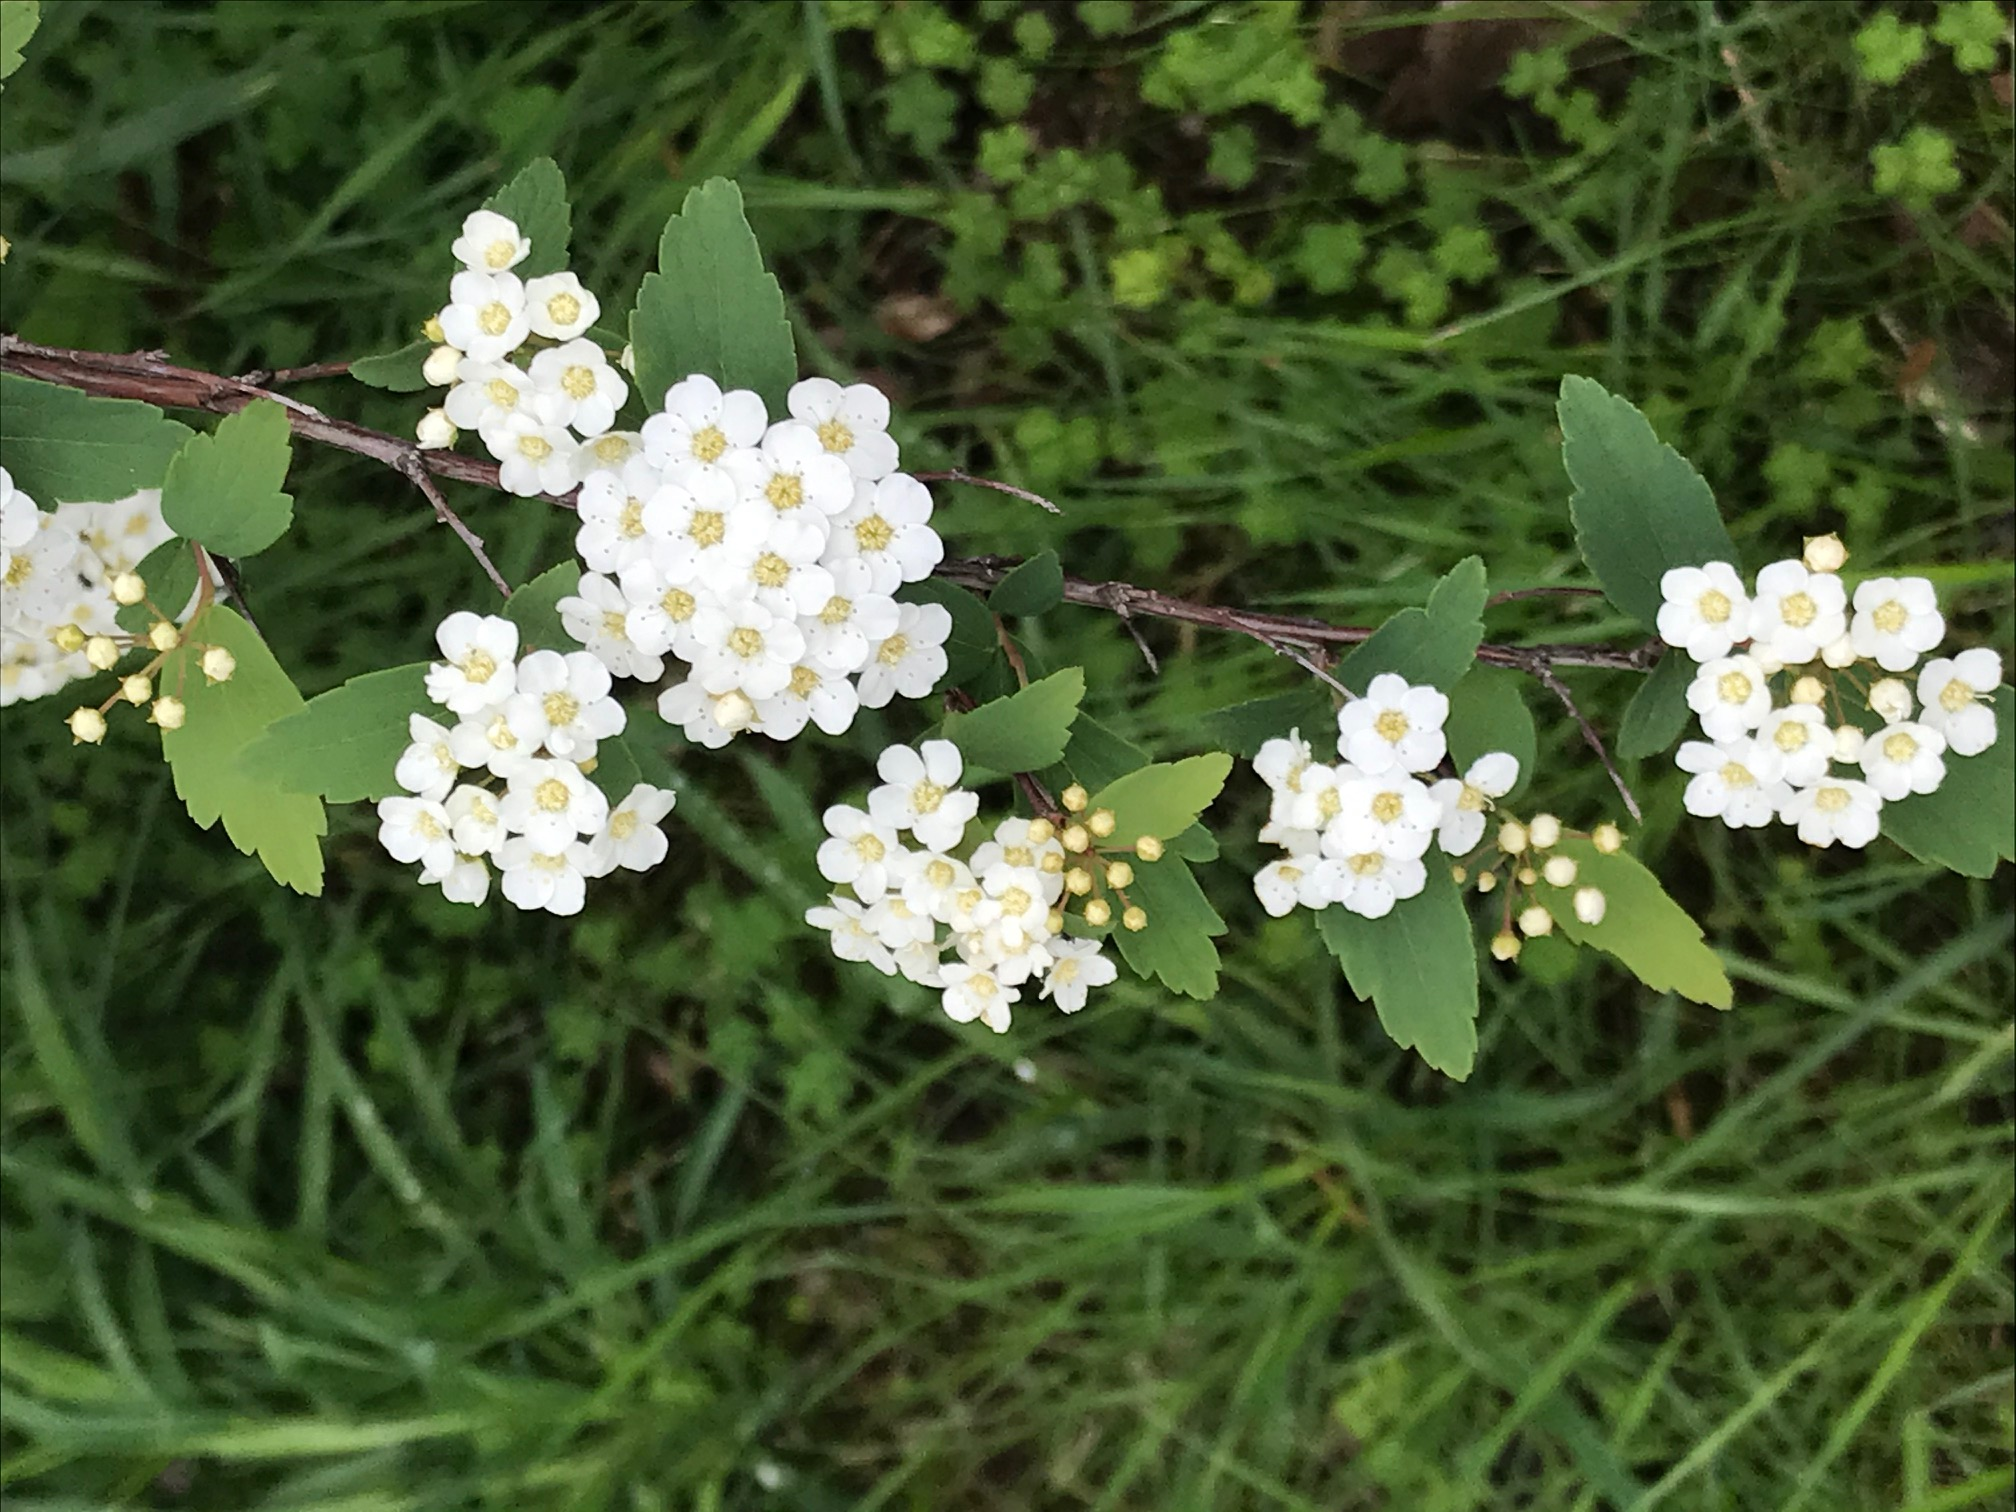 Name: Reyhane. Prize: Shortlist. In each group of flower buds there is 8 flower buds. This type of flower is called spring flower. Each of these flowers are 1.5cm long. All the leaves are symmetrical vertically. Each Flower has 5 petals. On each flower there is some dots.